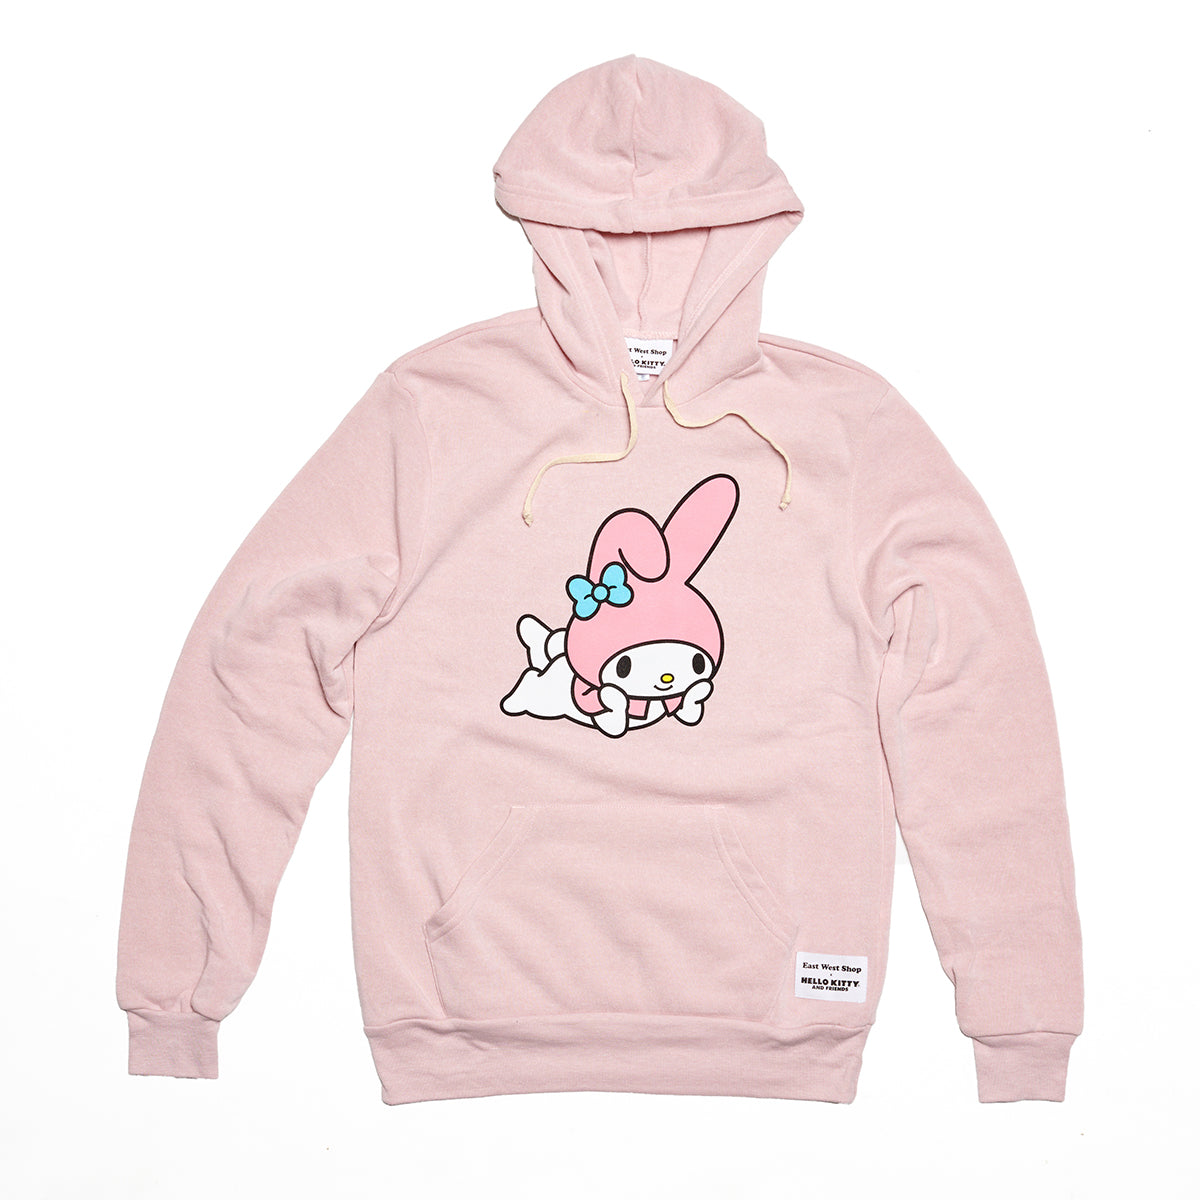 East West Shop x My Melody Pullover Hoodie Pink